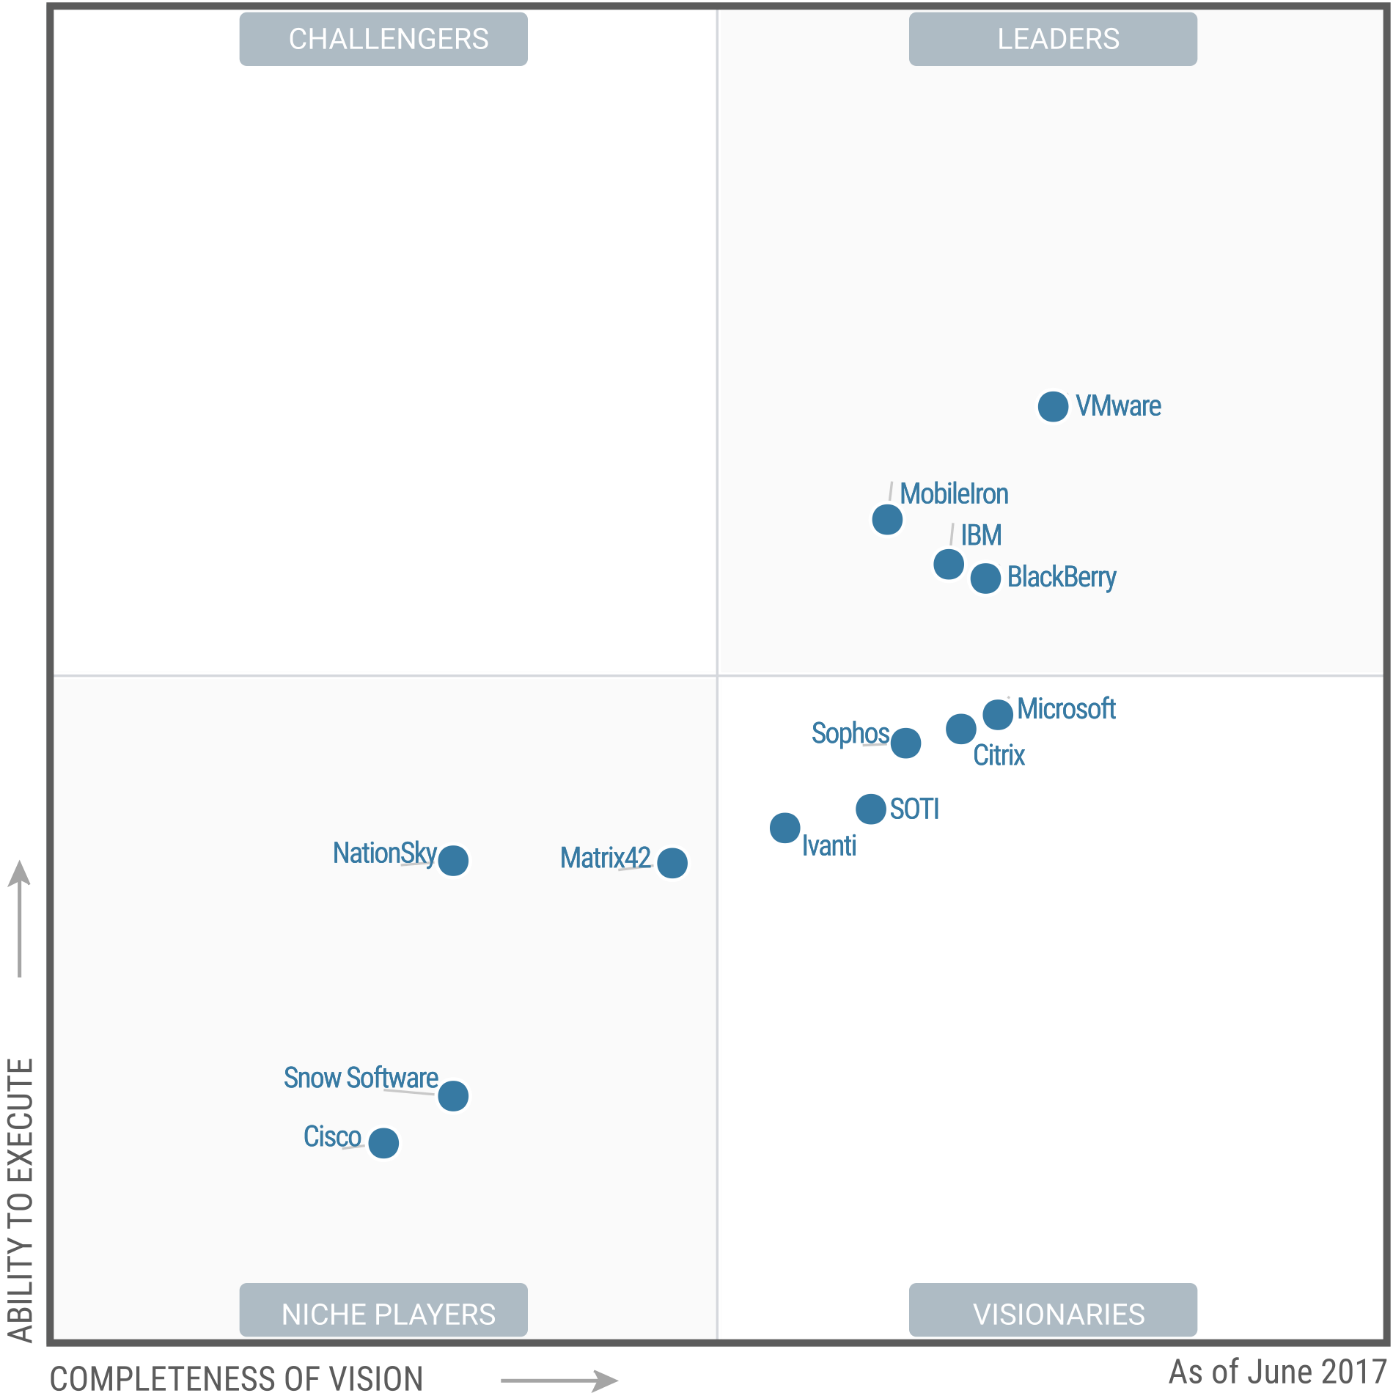 Magic Quadrant for Enterprise Mobility Management Suites 2017 (G00311193)